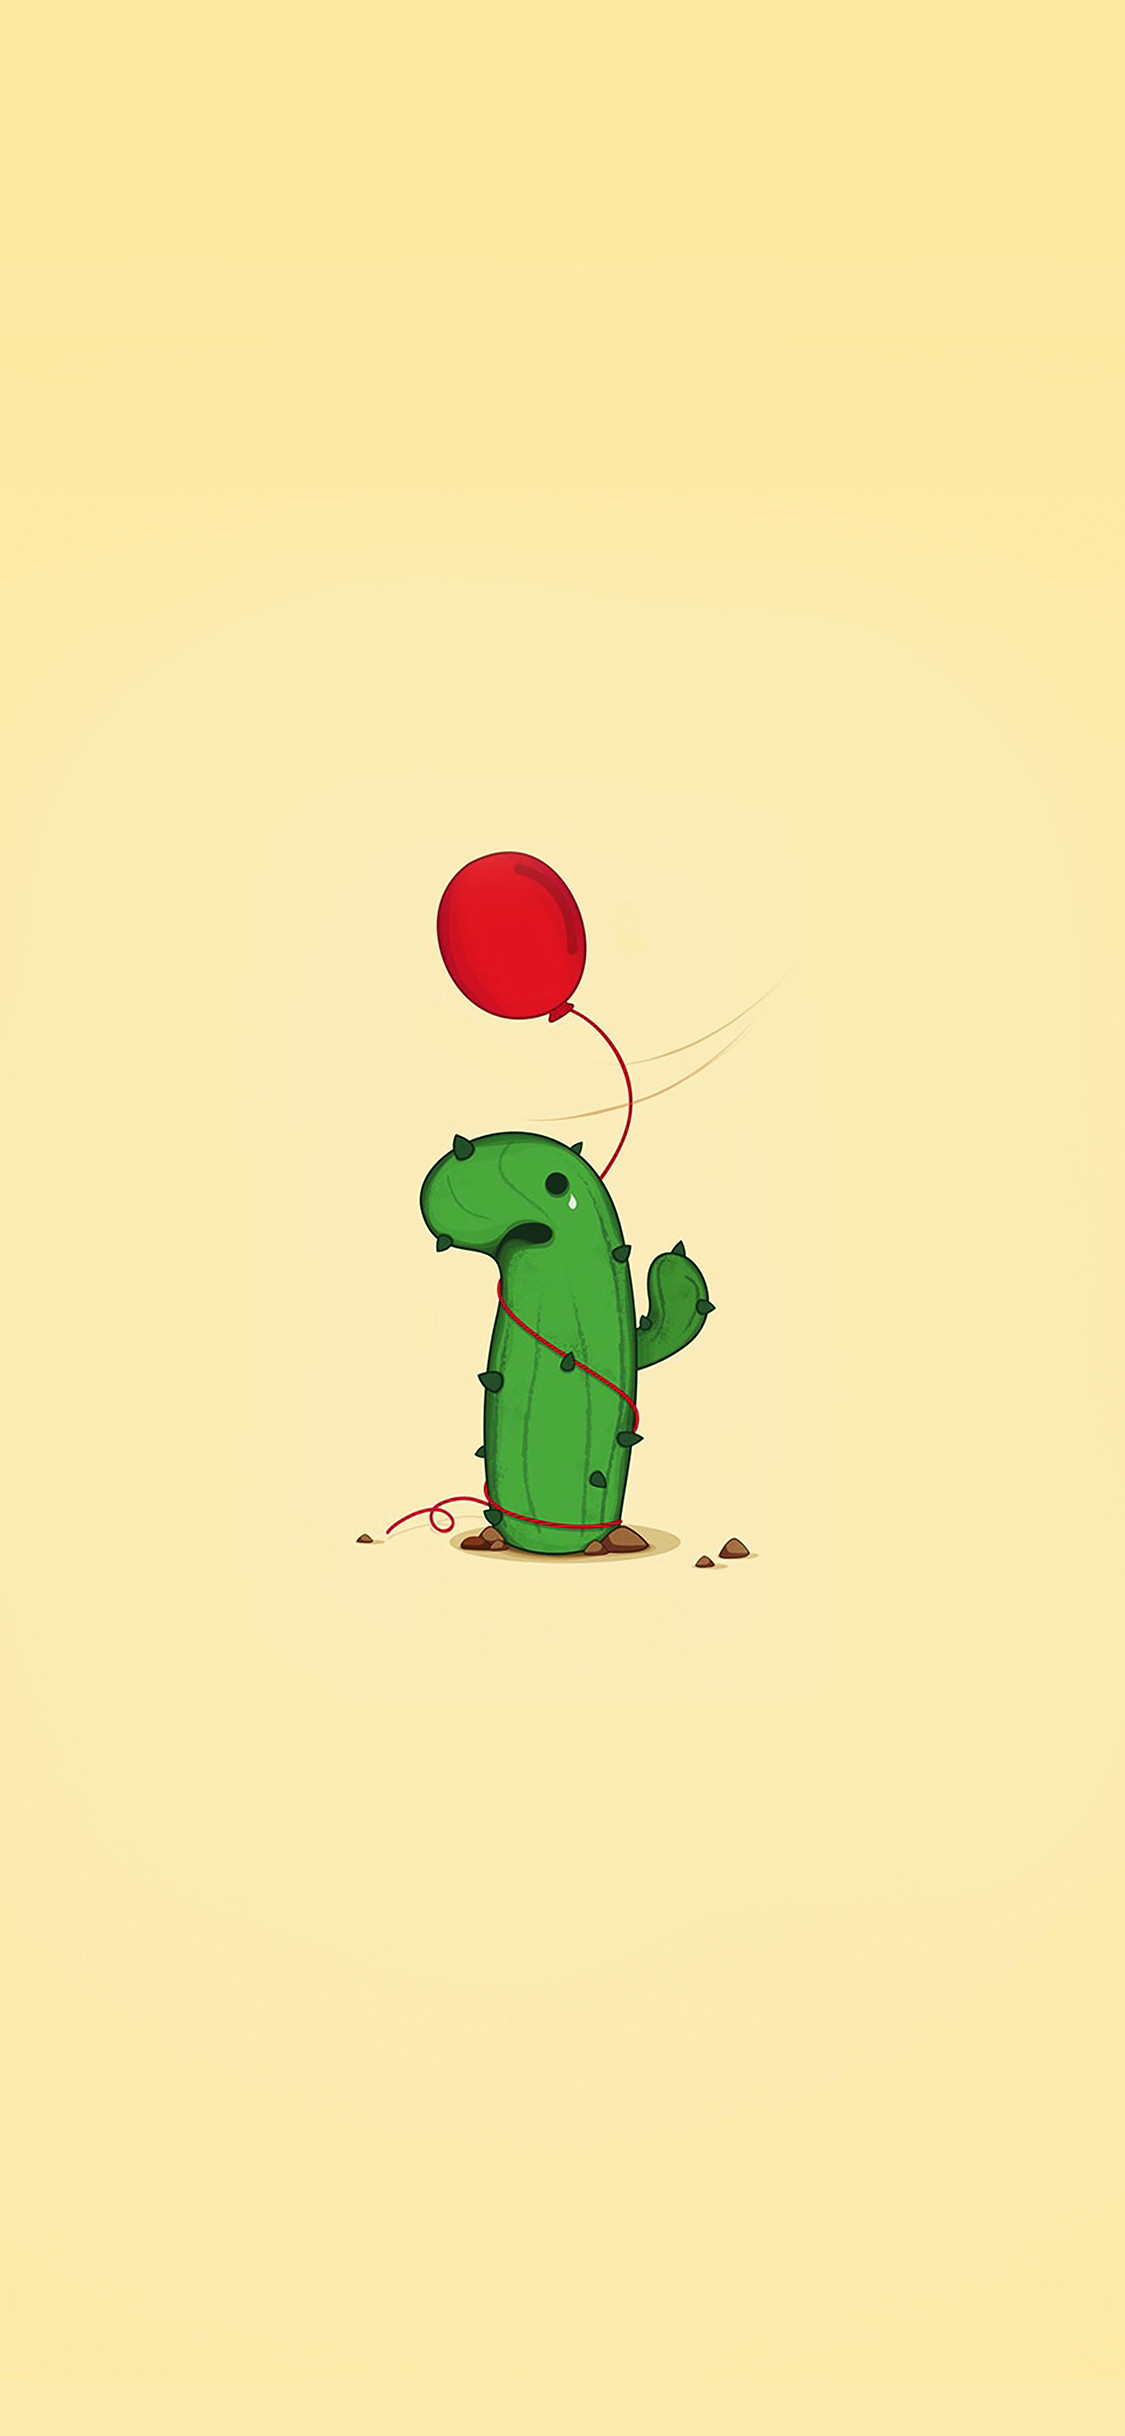 Iphonexpapers Ai35 Cute Cactus Ballon Illust Art Minimal